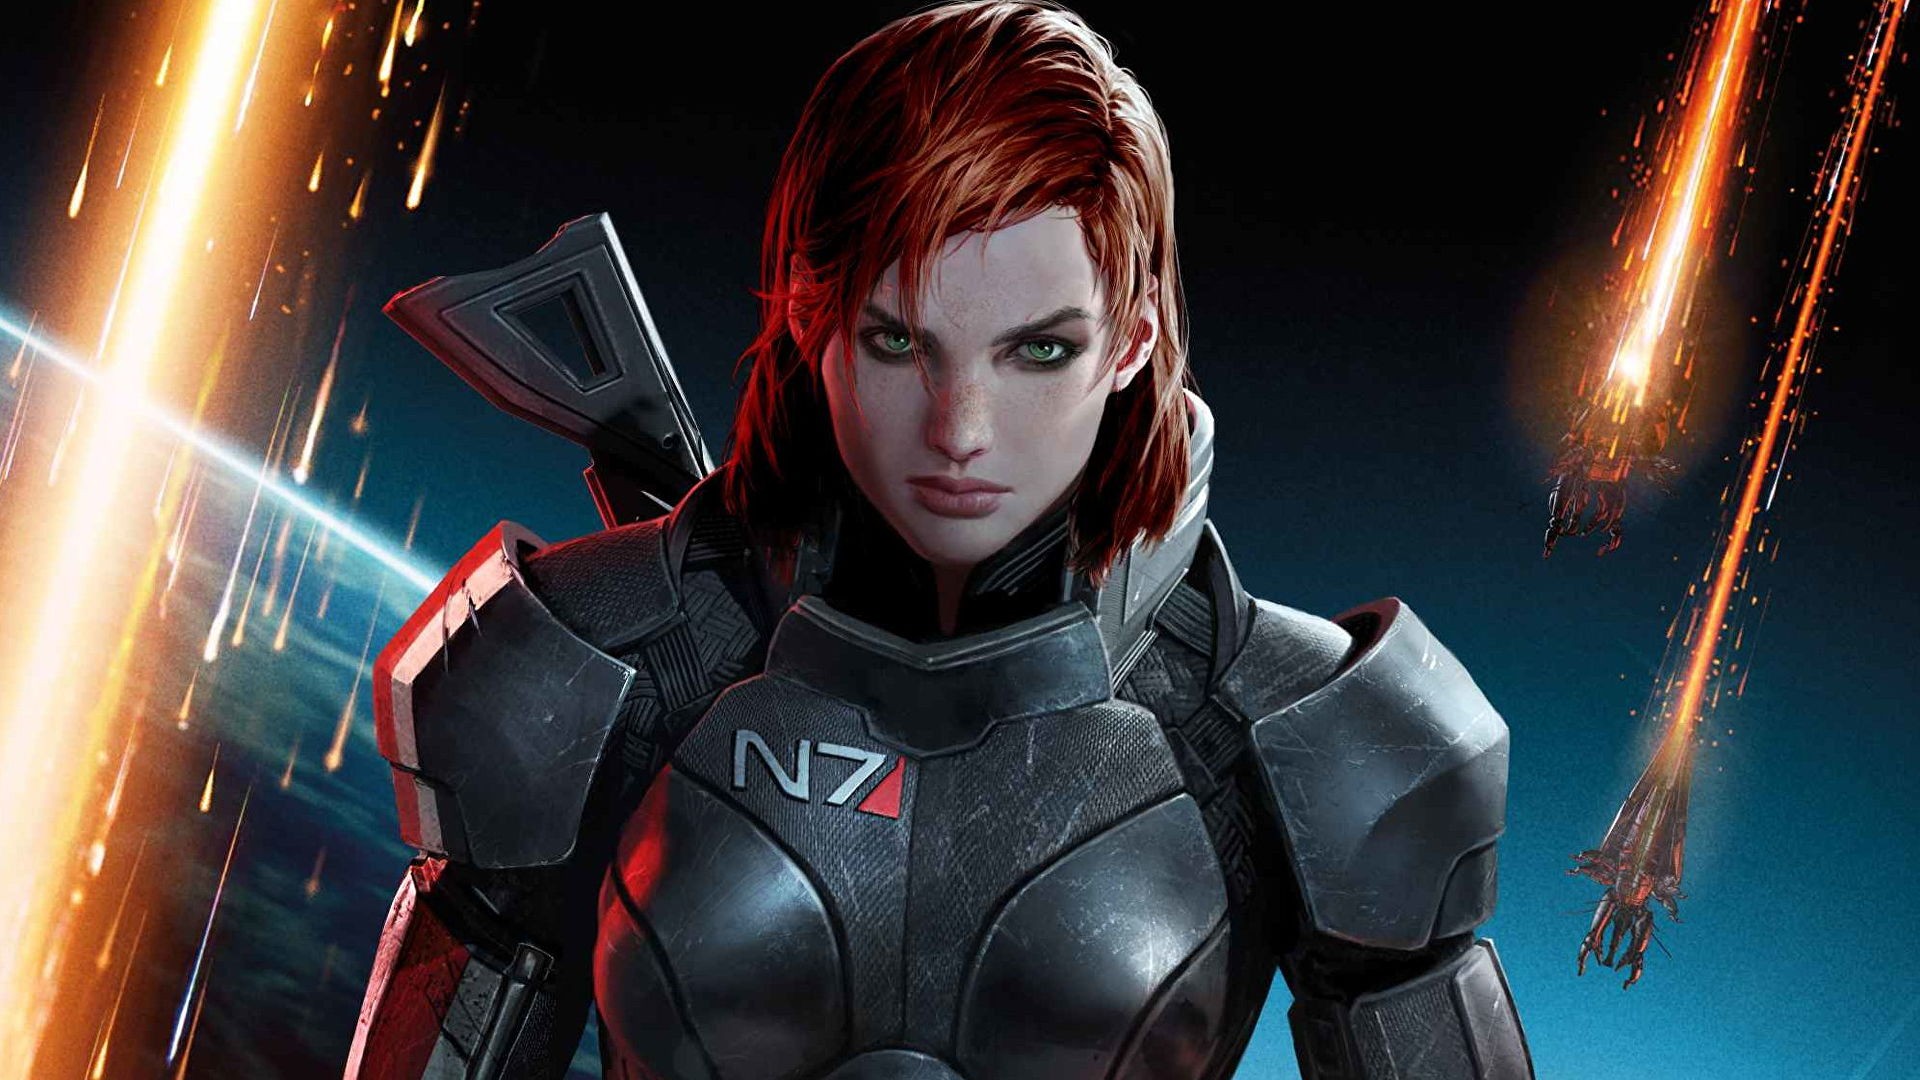 Henry Cavill must be writing Mass Effect fanfic